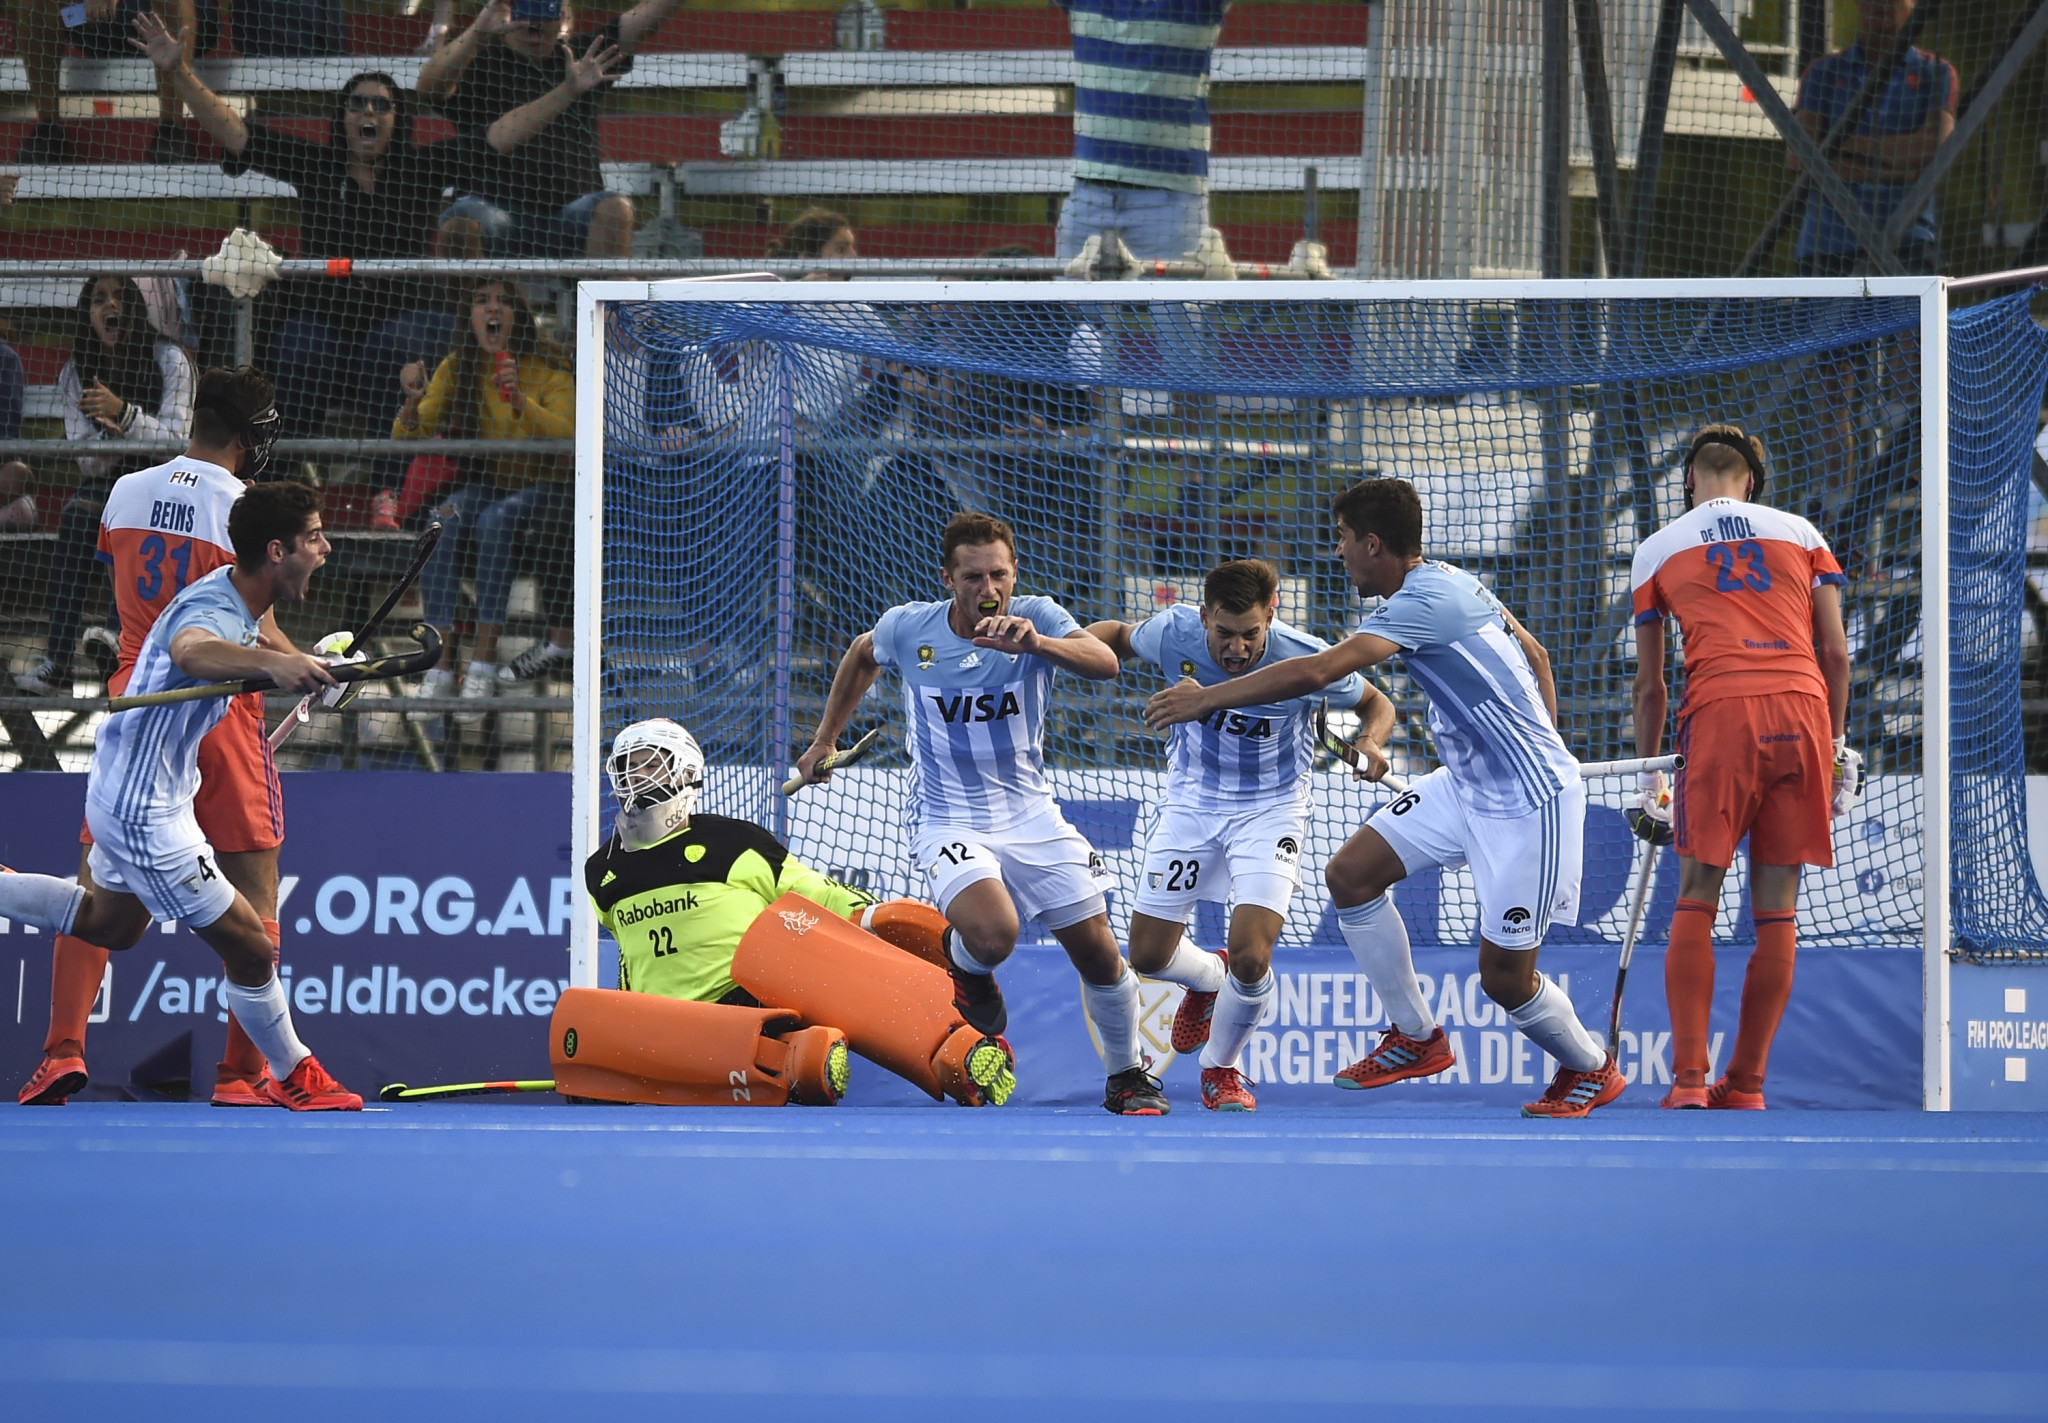 Olympic champions Argentina beat Netherlands to claim first victory in men's FIH Pro League